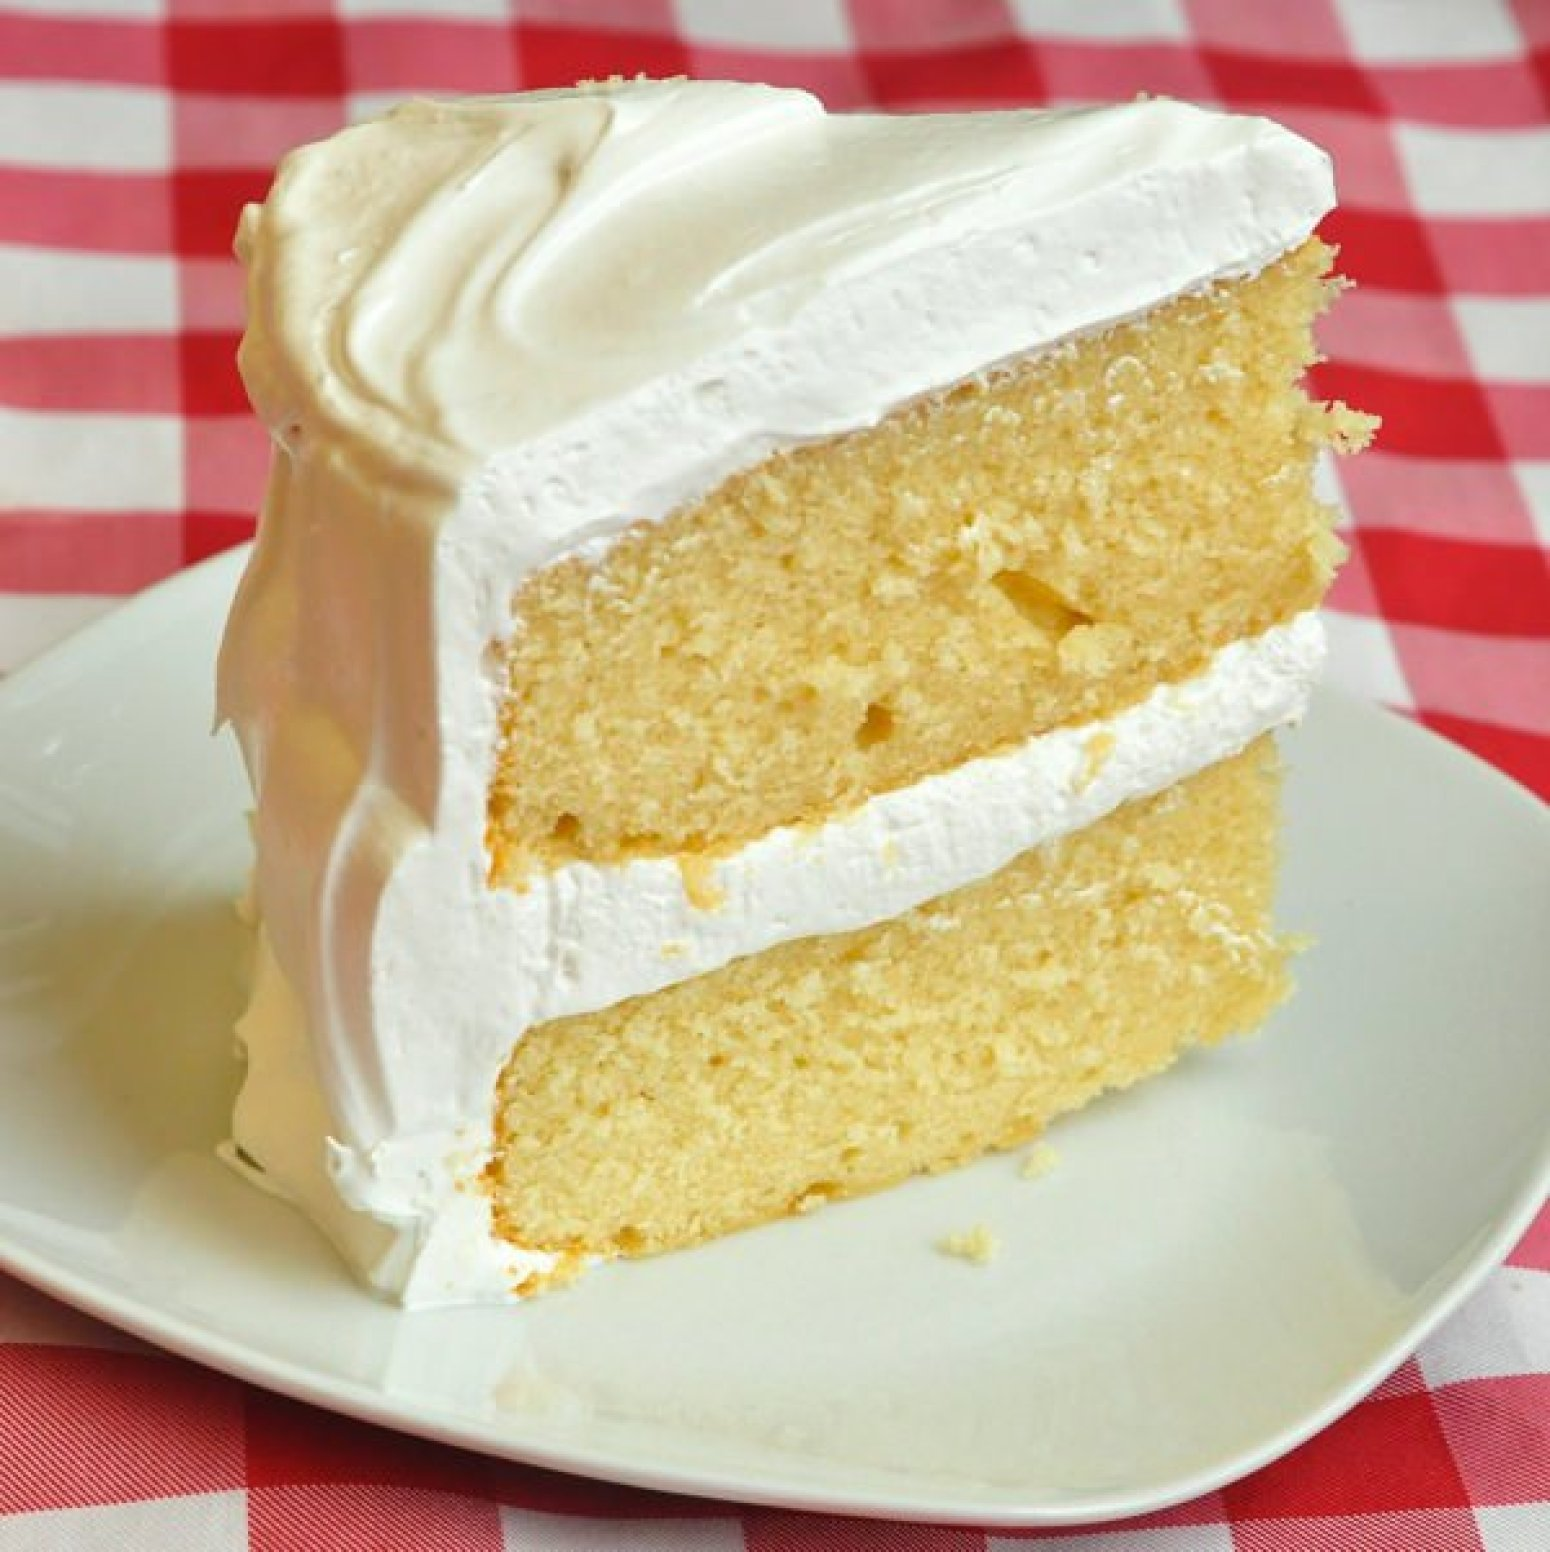 Vanilla Cake Recipe: The Best Vanilla Cake Recipe 2